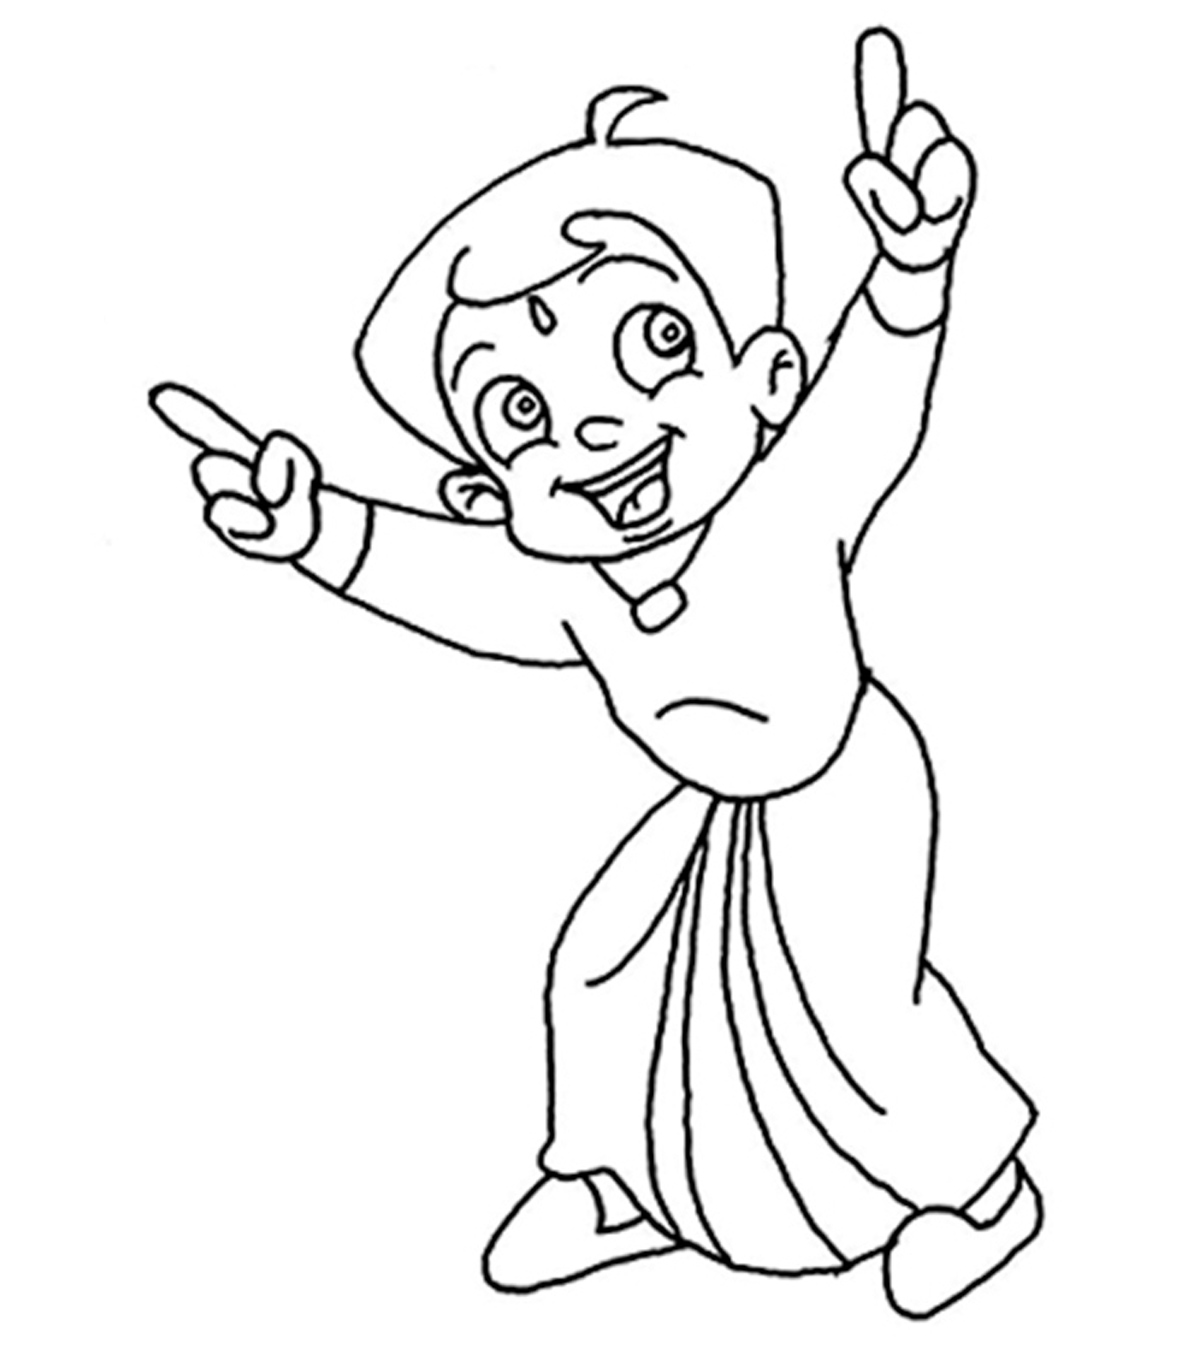 chotta bheem pictures chota bheem coloring pages bheem pictures chotta